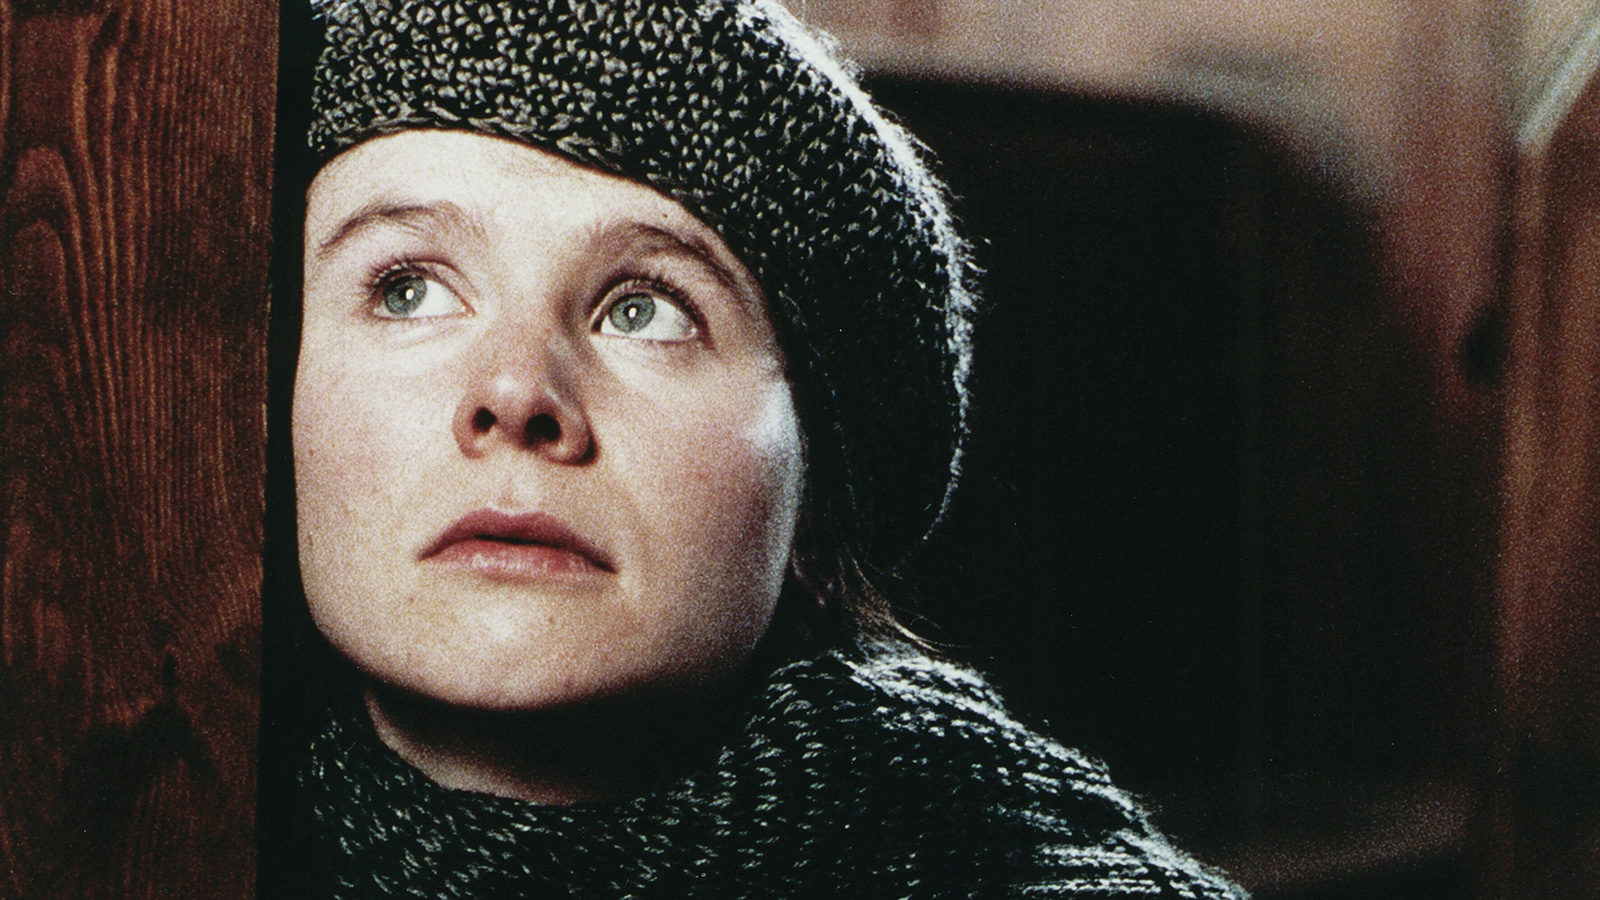 Breaking the Waves 1600x900 c default - نقد فیلم Breaking the Waves محصول 1996 (شکستن امواج)